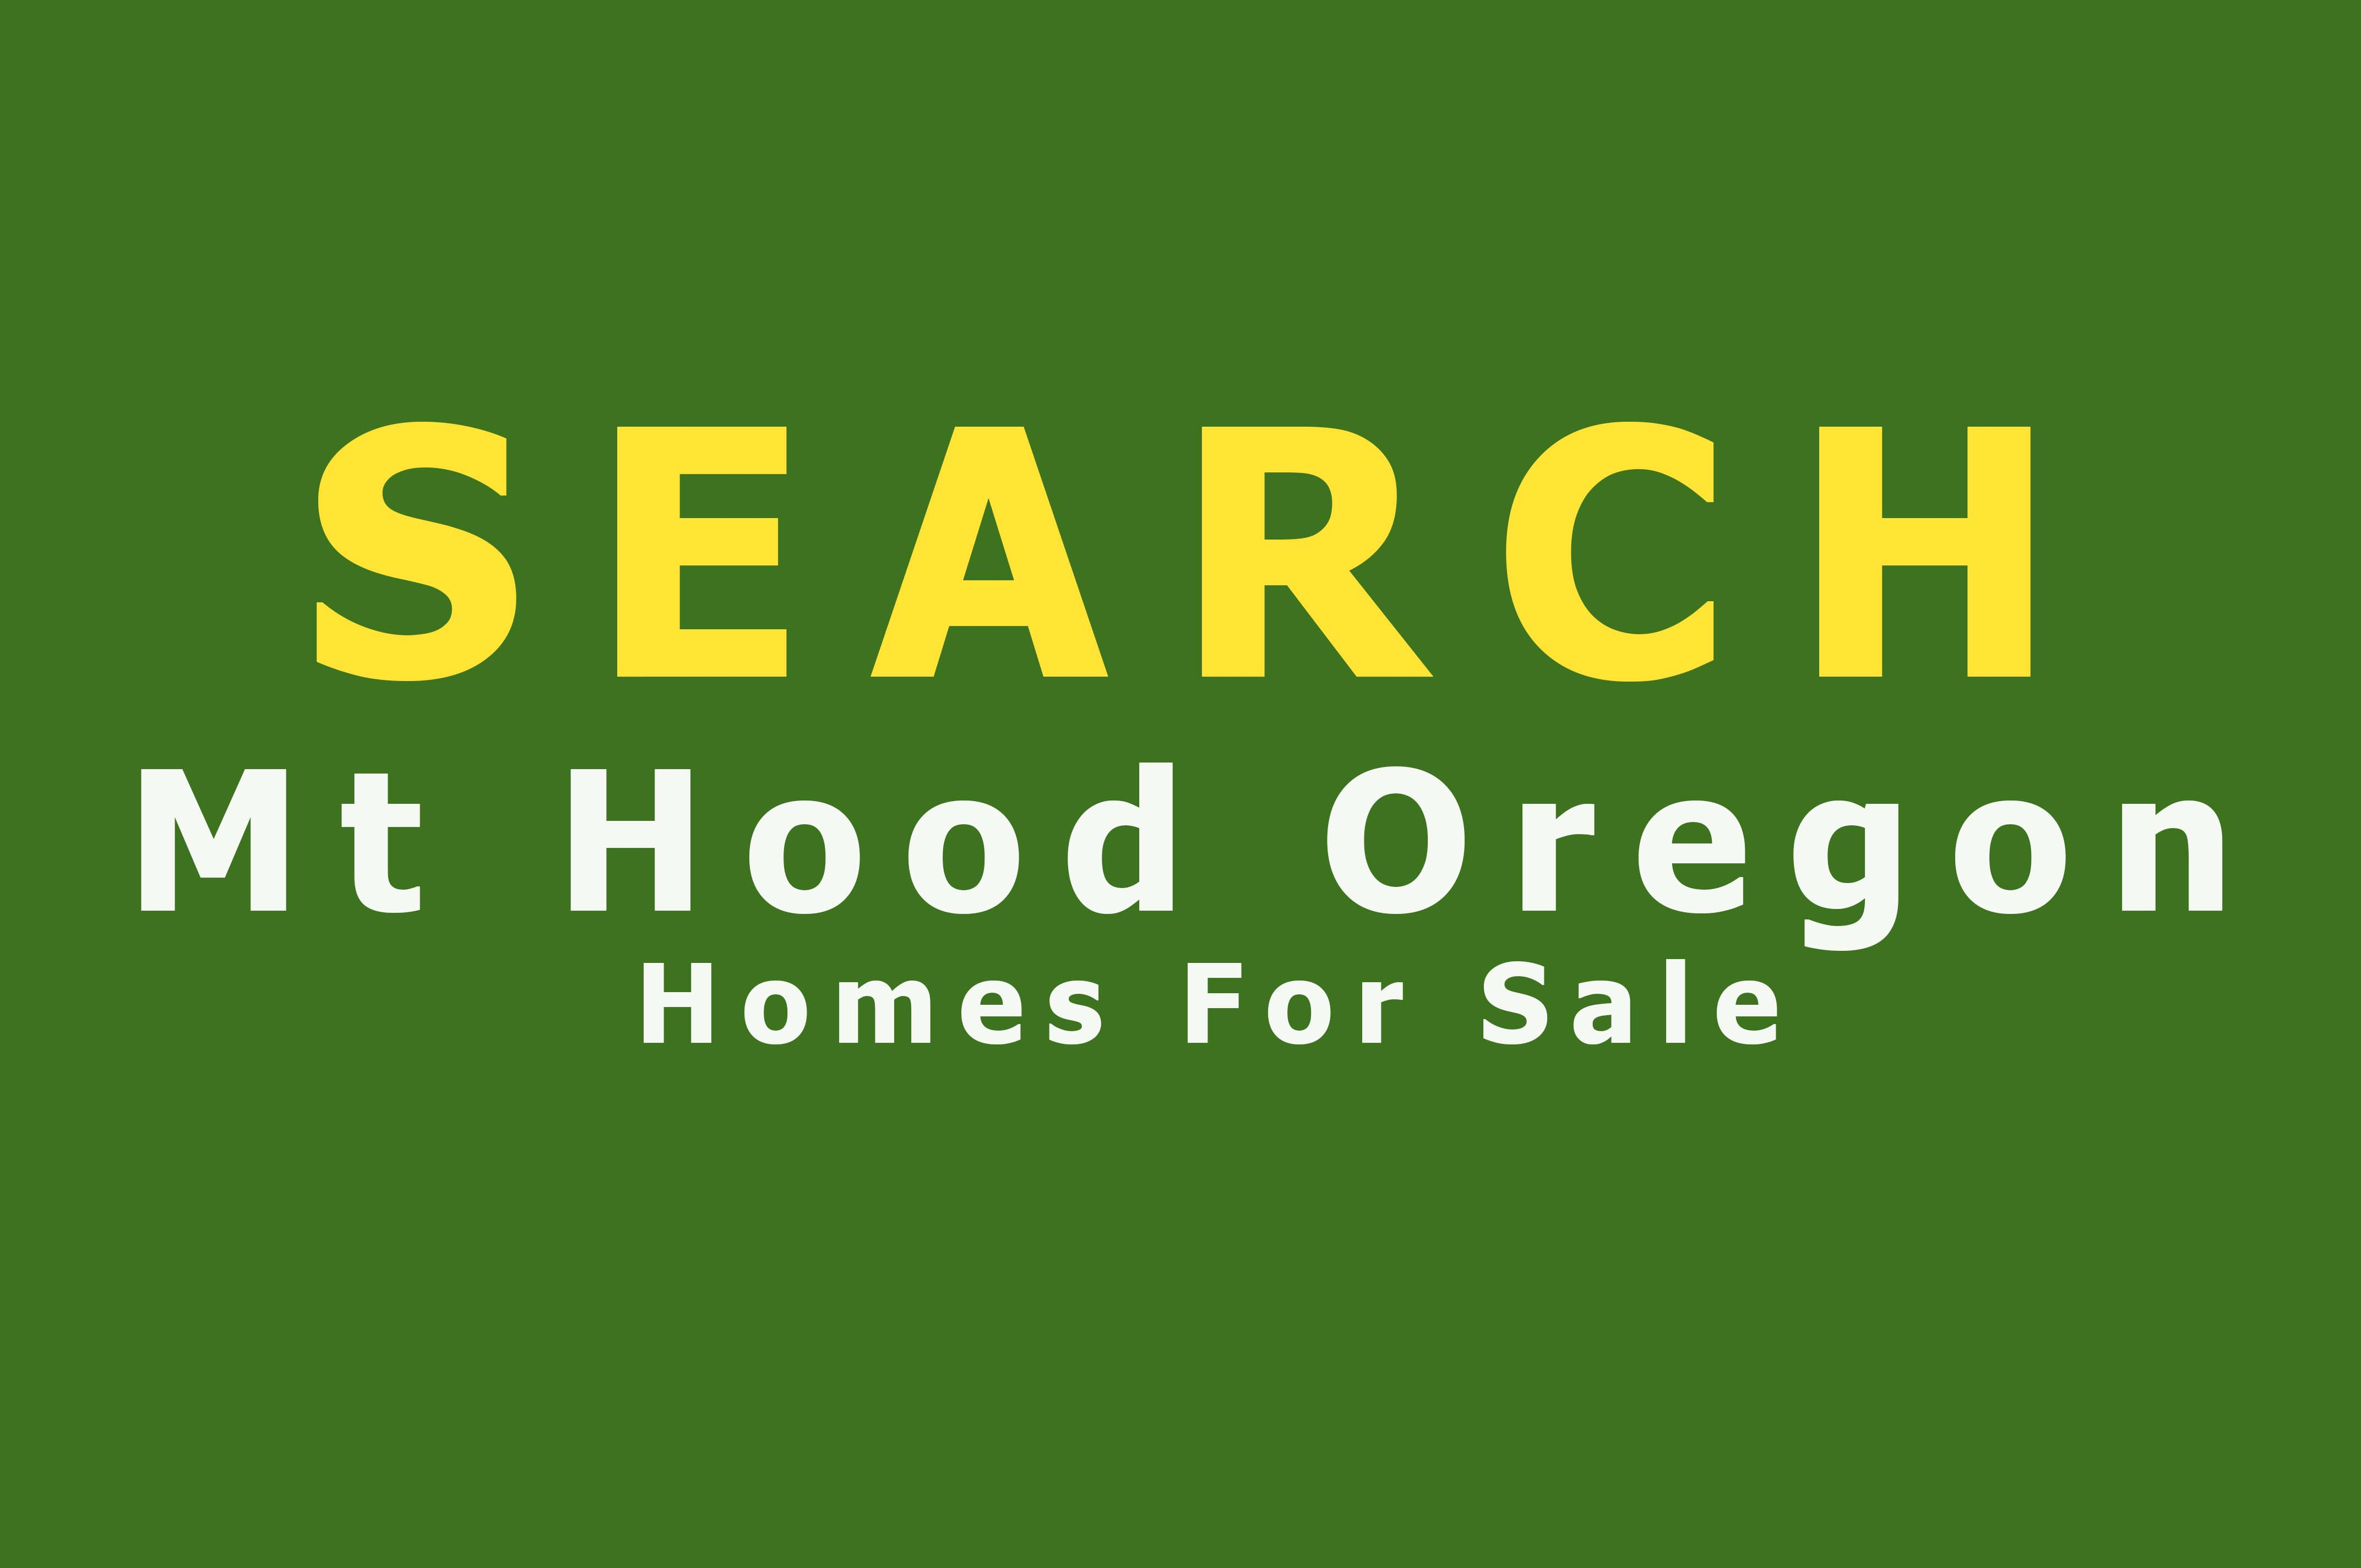 SEARCH Mt Hood Homes for Sale